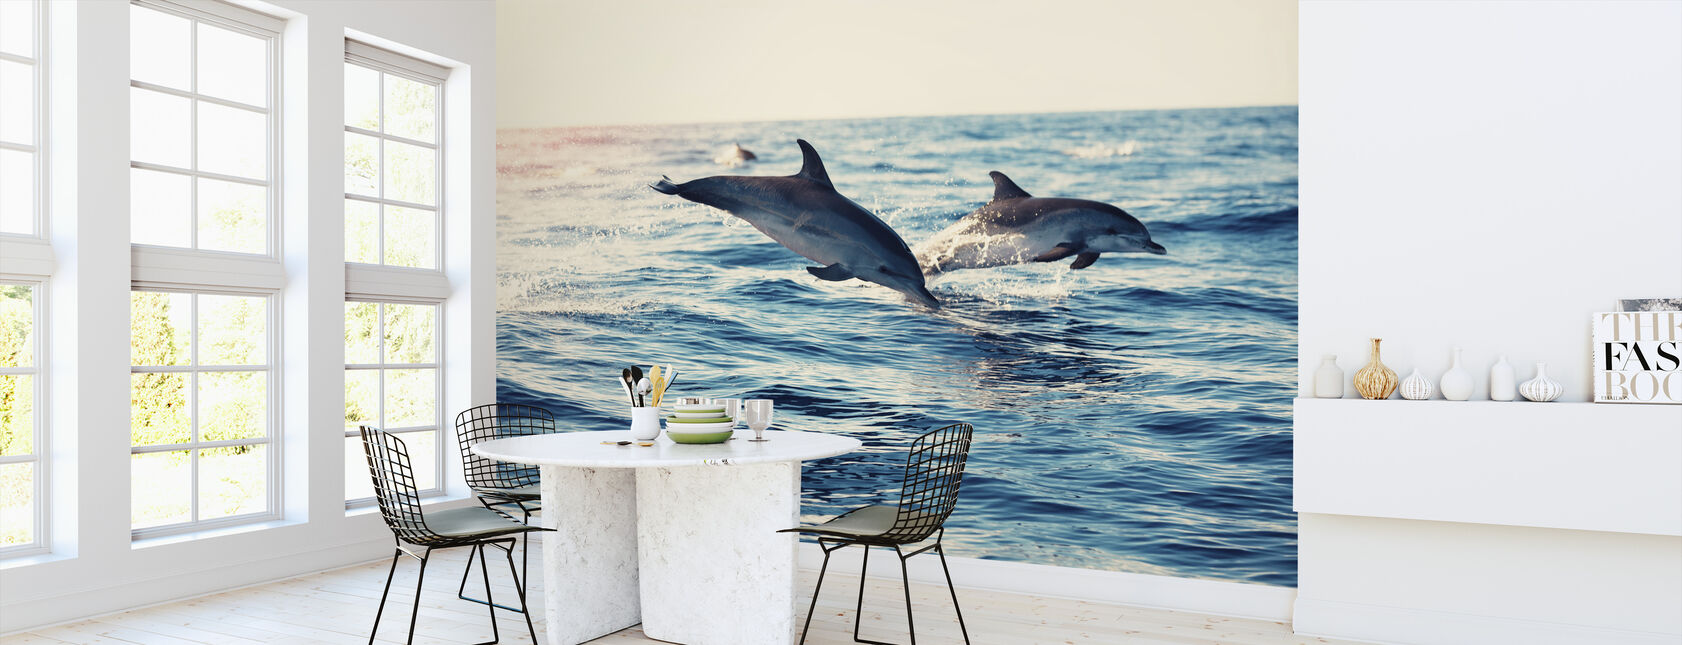 Dolphins Jumping from the Sea - Wallpaper - Kitchen